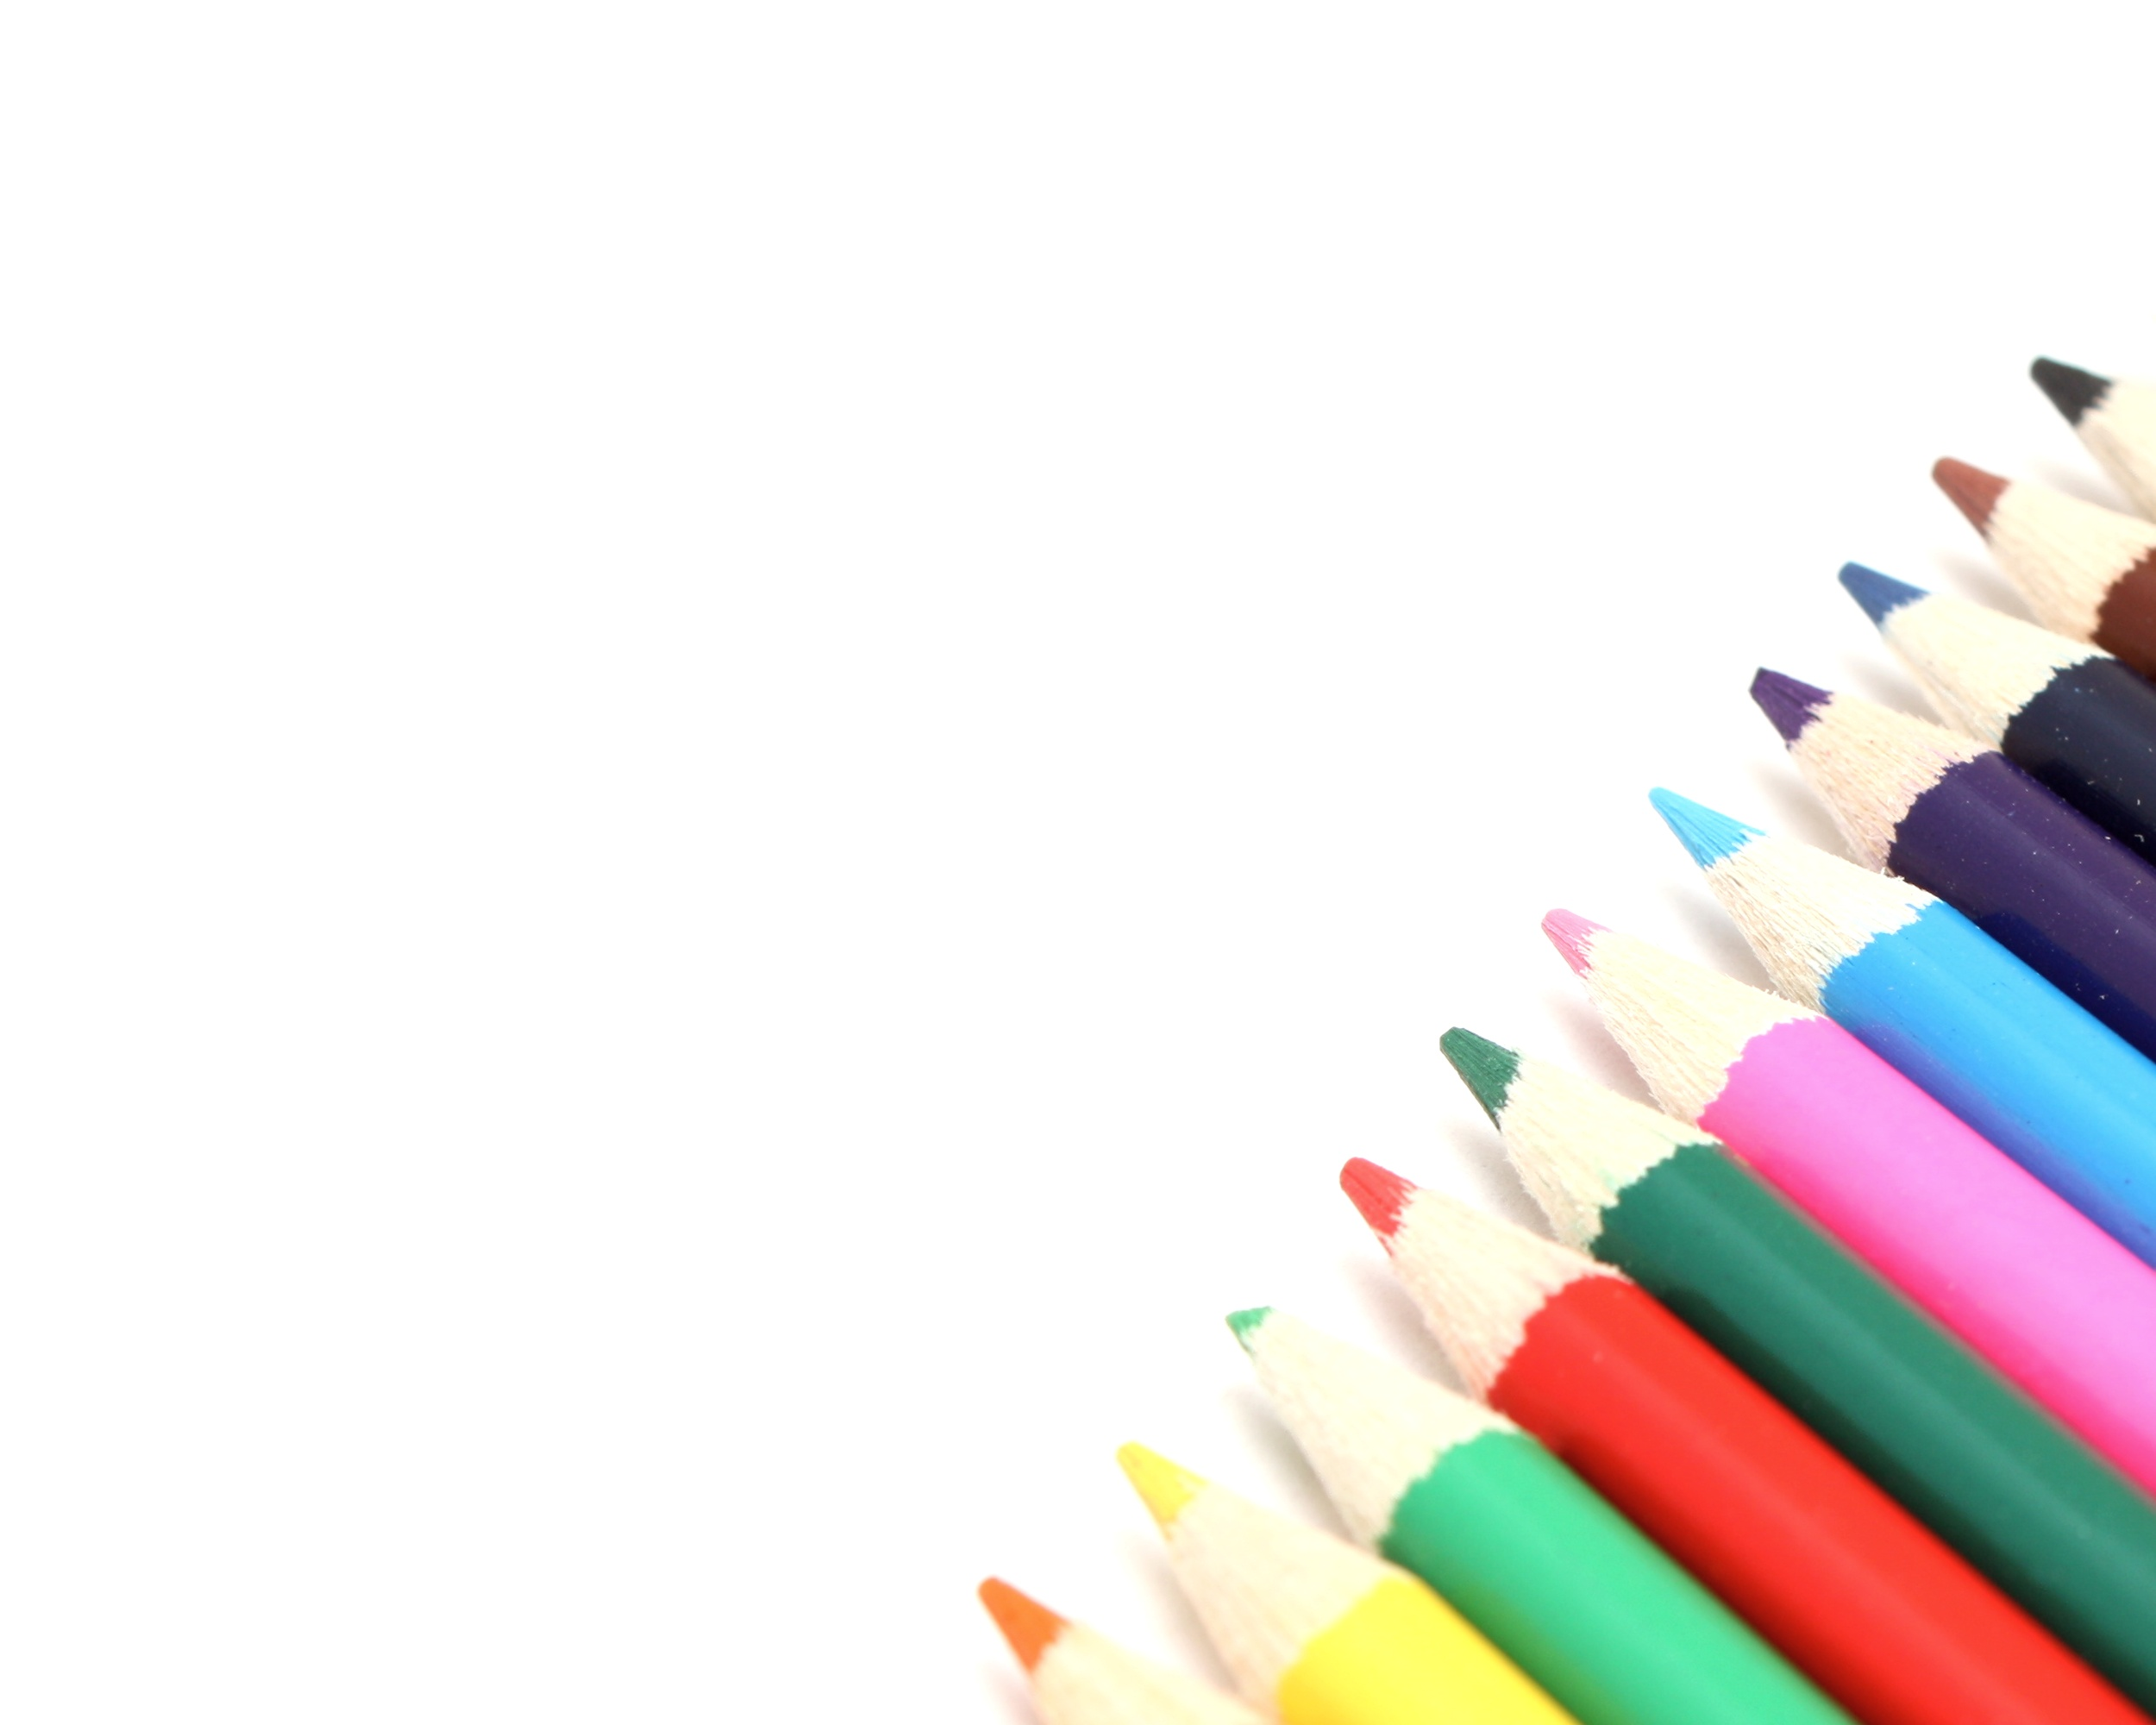 Close-up of colored pencils, Art, Colored, Colors, Drawing, HQ Photo